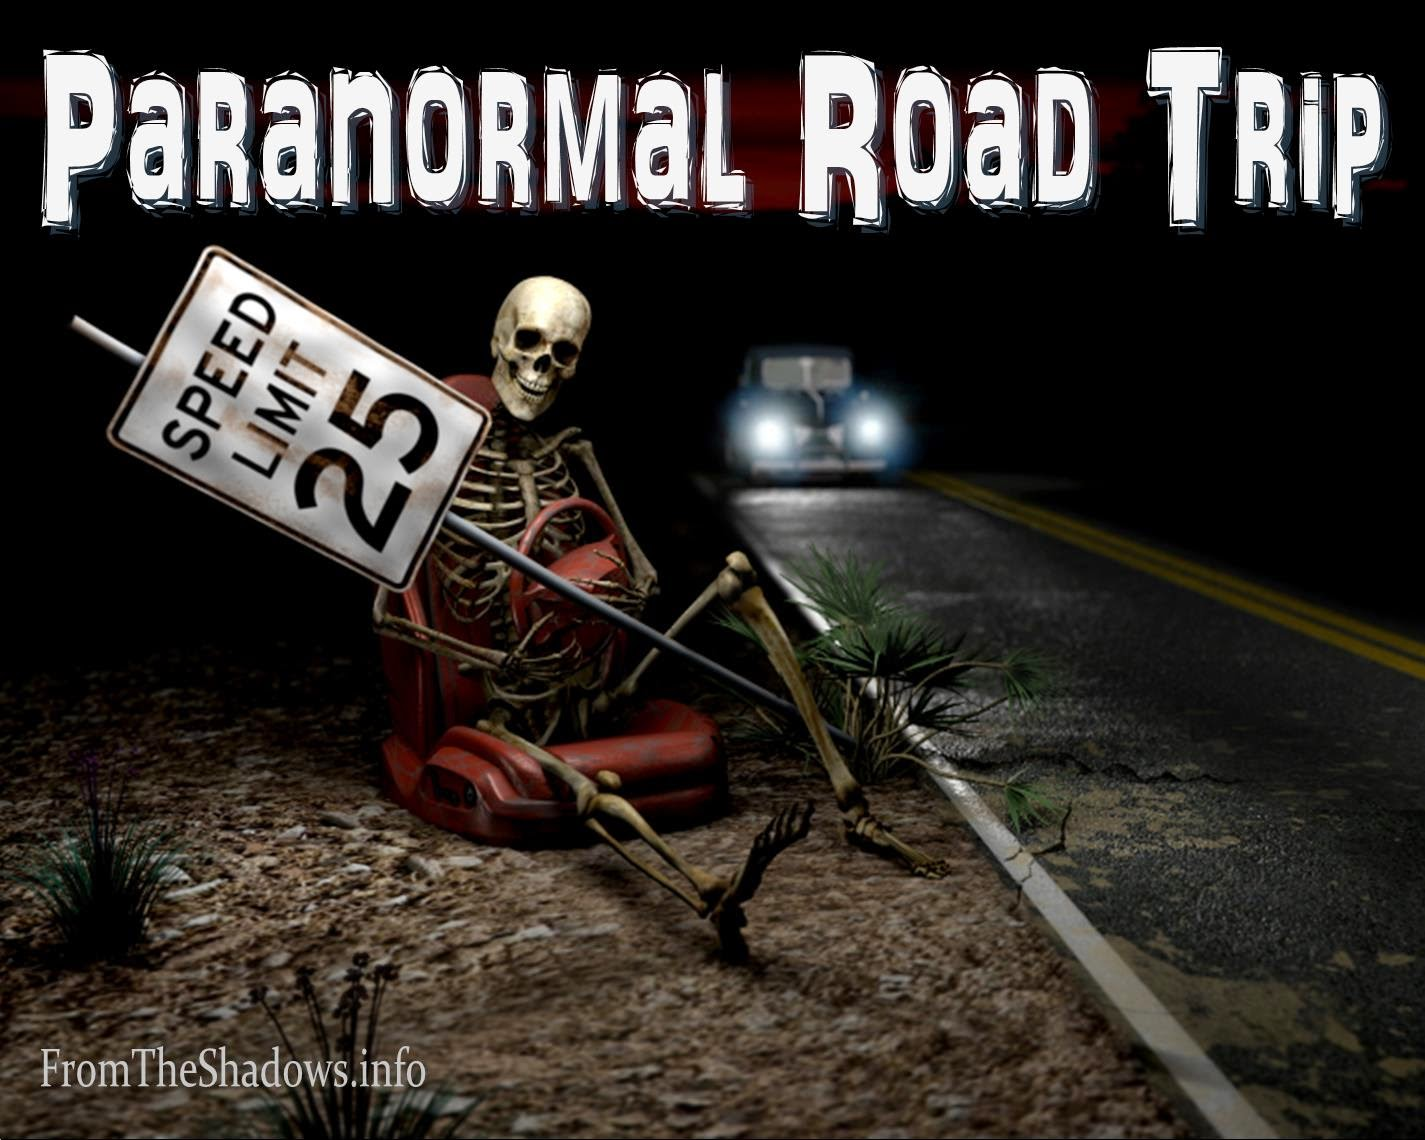 Paranormal Road Trip: Destination Krymzyn with B.C. Powell